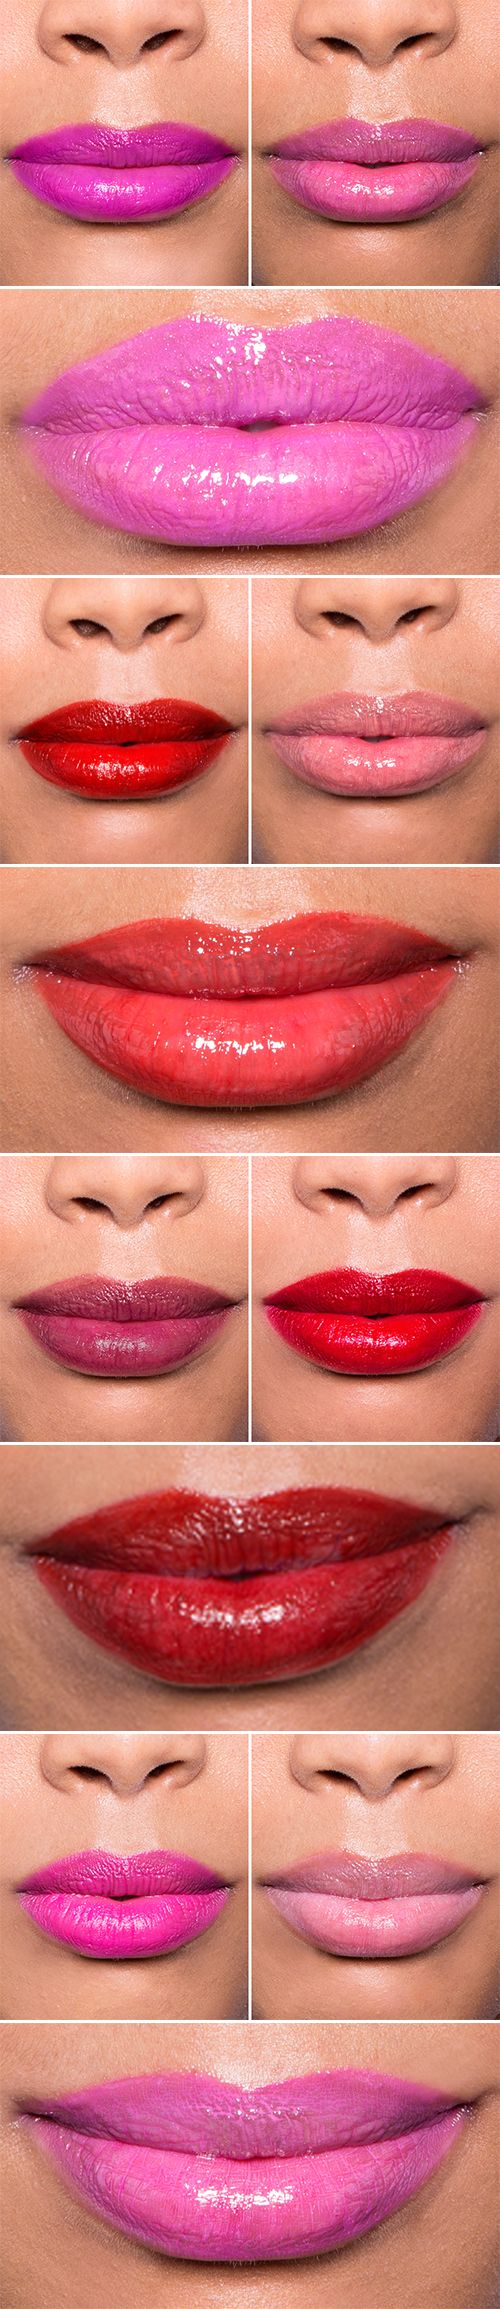 Learn how to mix and match your lipstick shades to create an original shade you can guarantee no one else will be wearing.